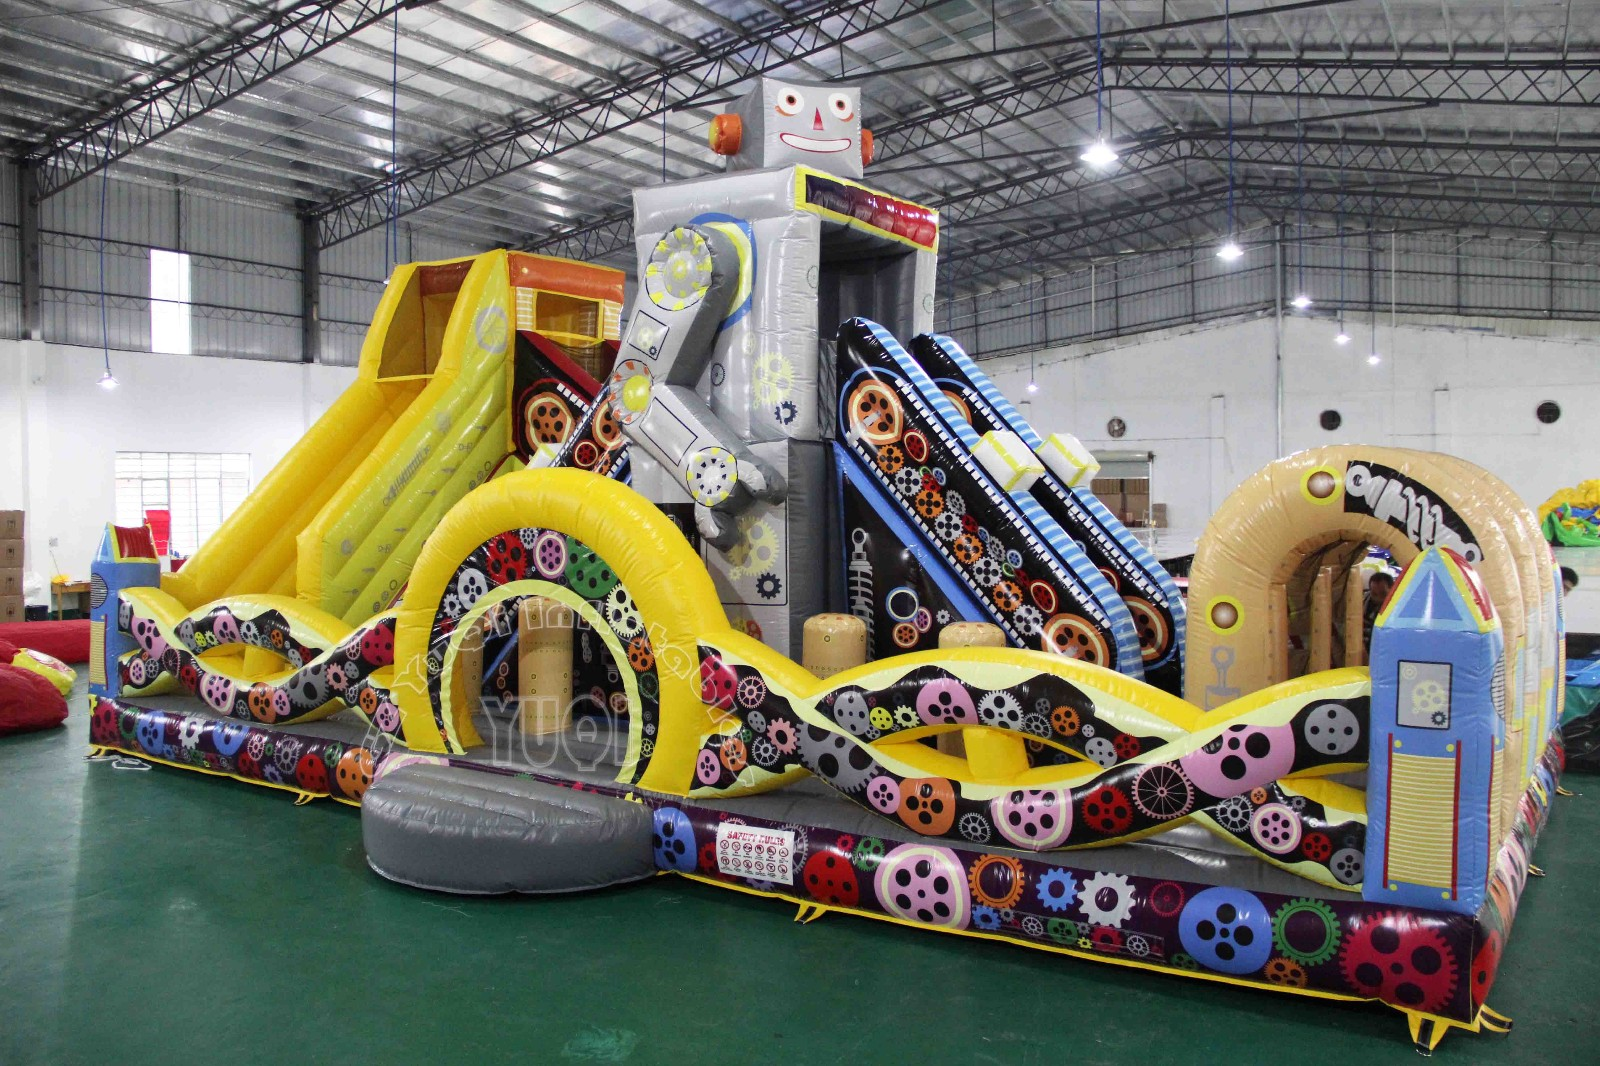 YUQI-Yq26 New Giant Inflatable Amusement Park And Hot Fireproof